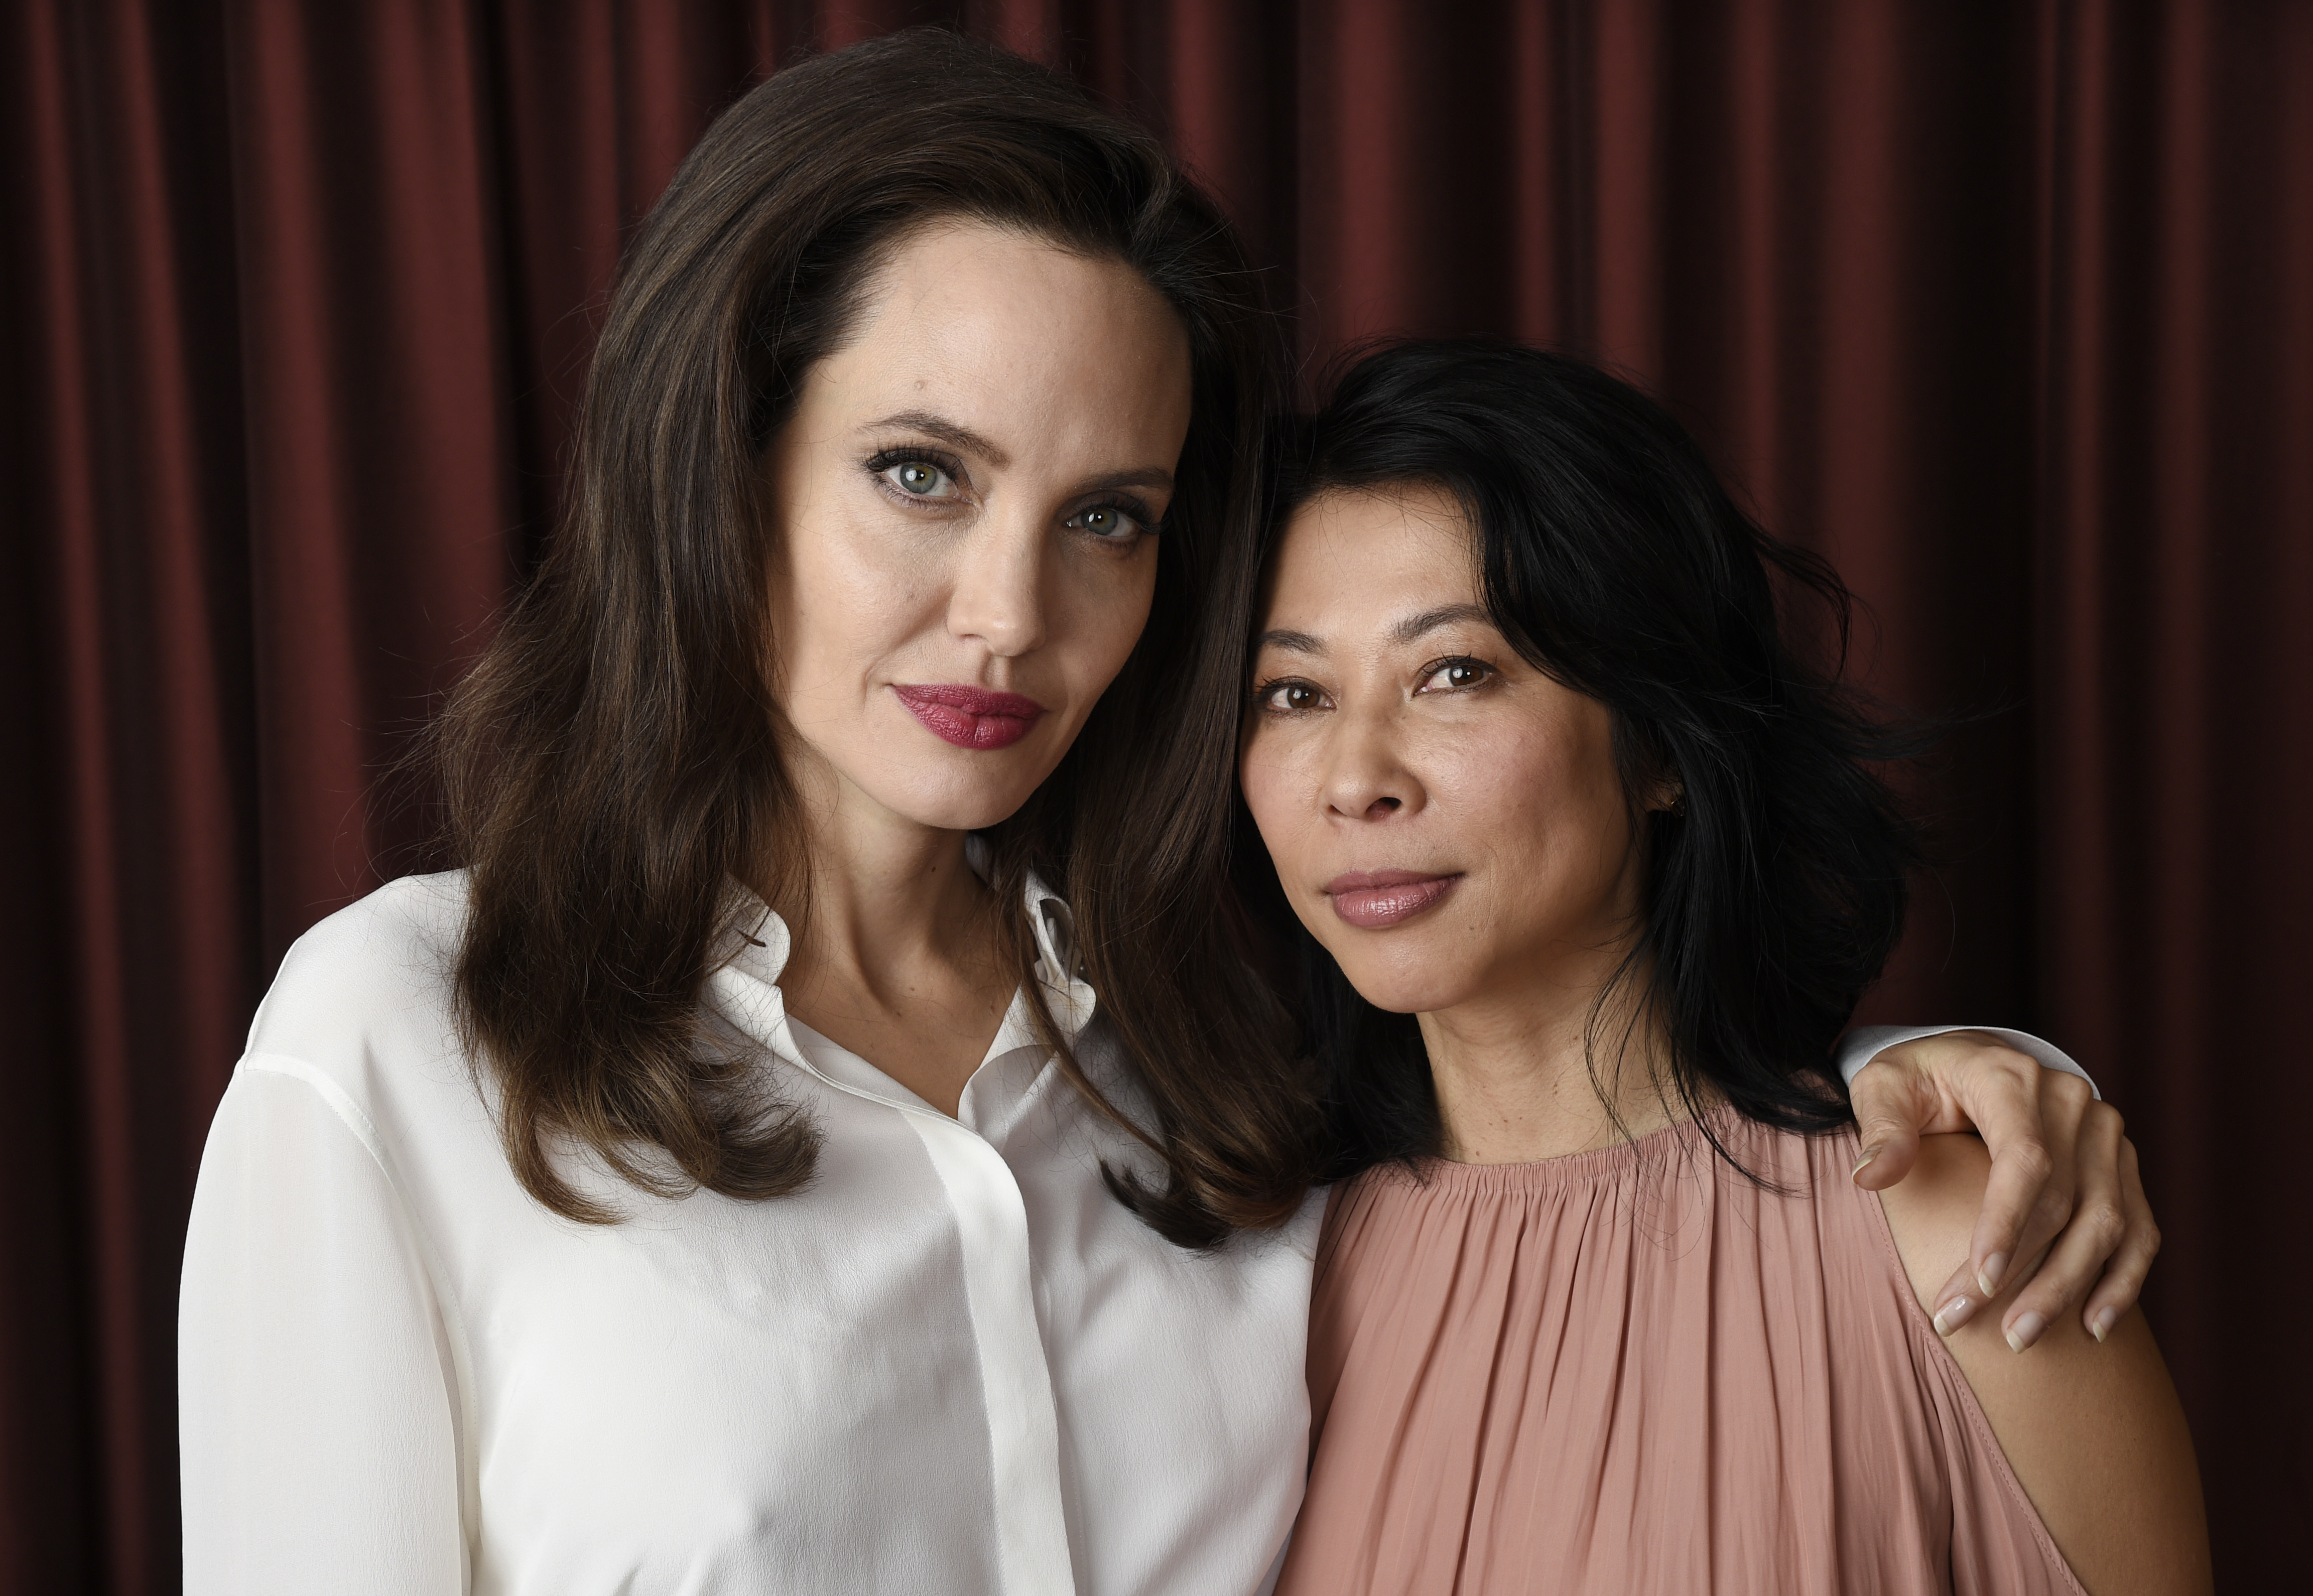 Angelina Jolie Video Hard angelina jolie: still breaking rules with first they killed